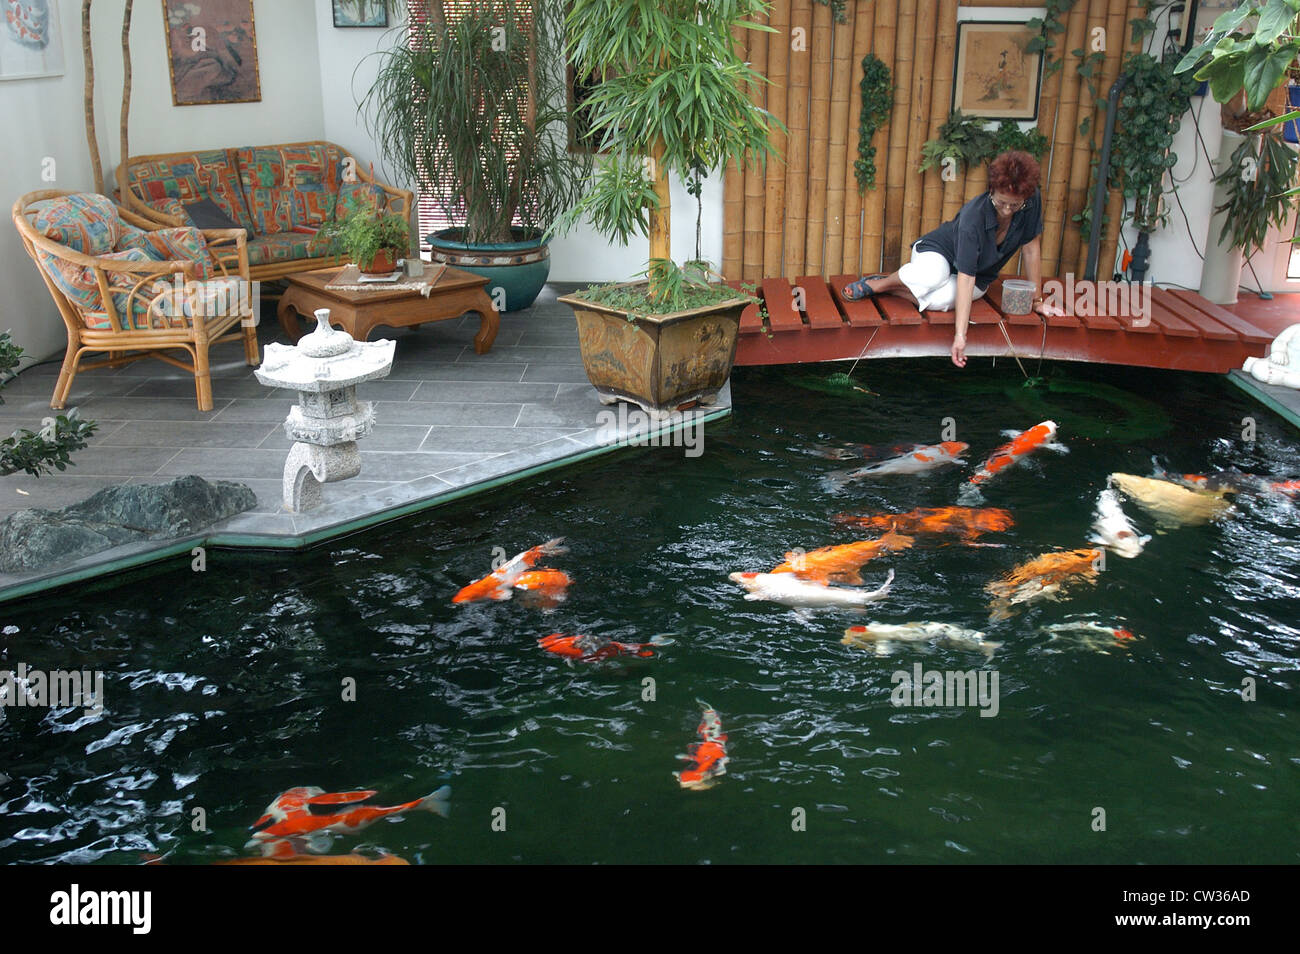 Indoor koi pond in reigoldswil switzerland stock photo for Koi fish in pool